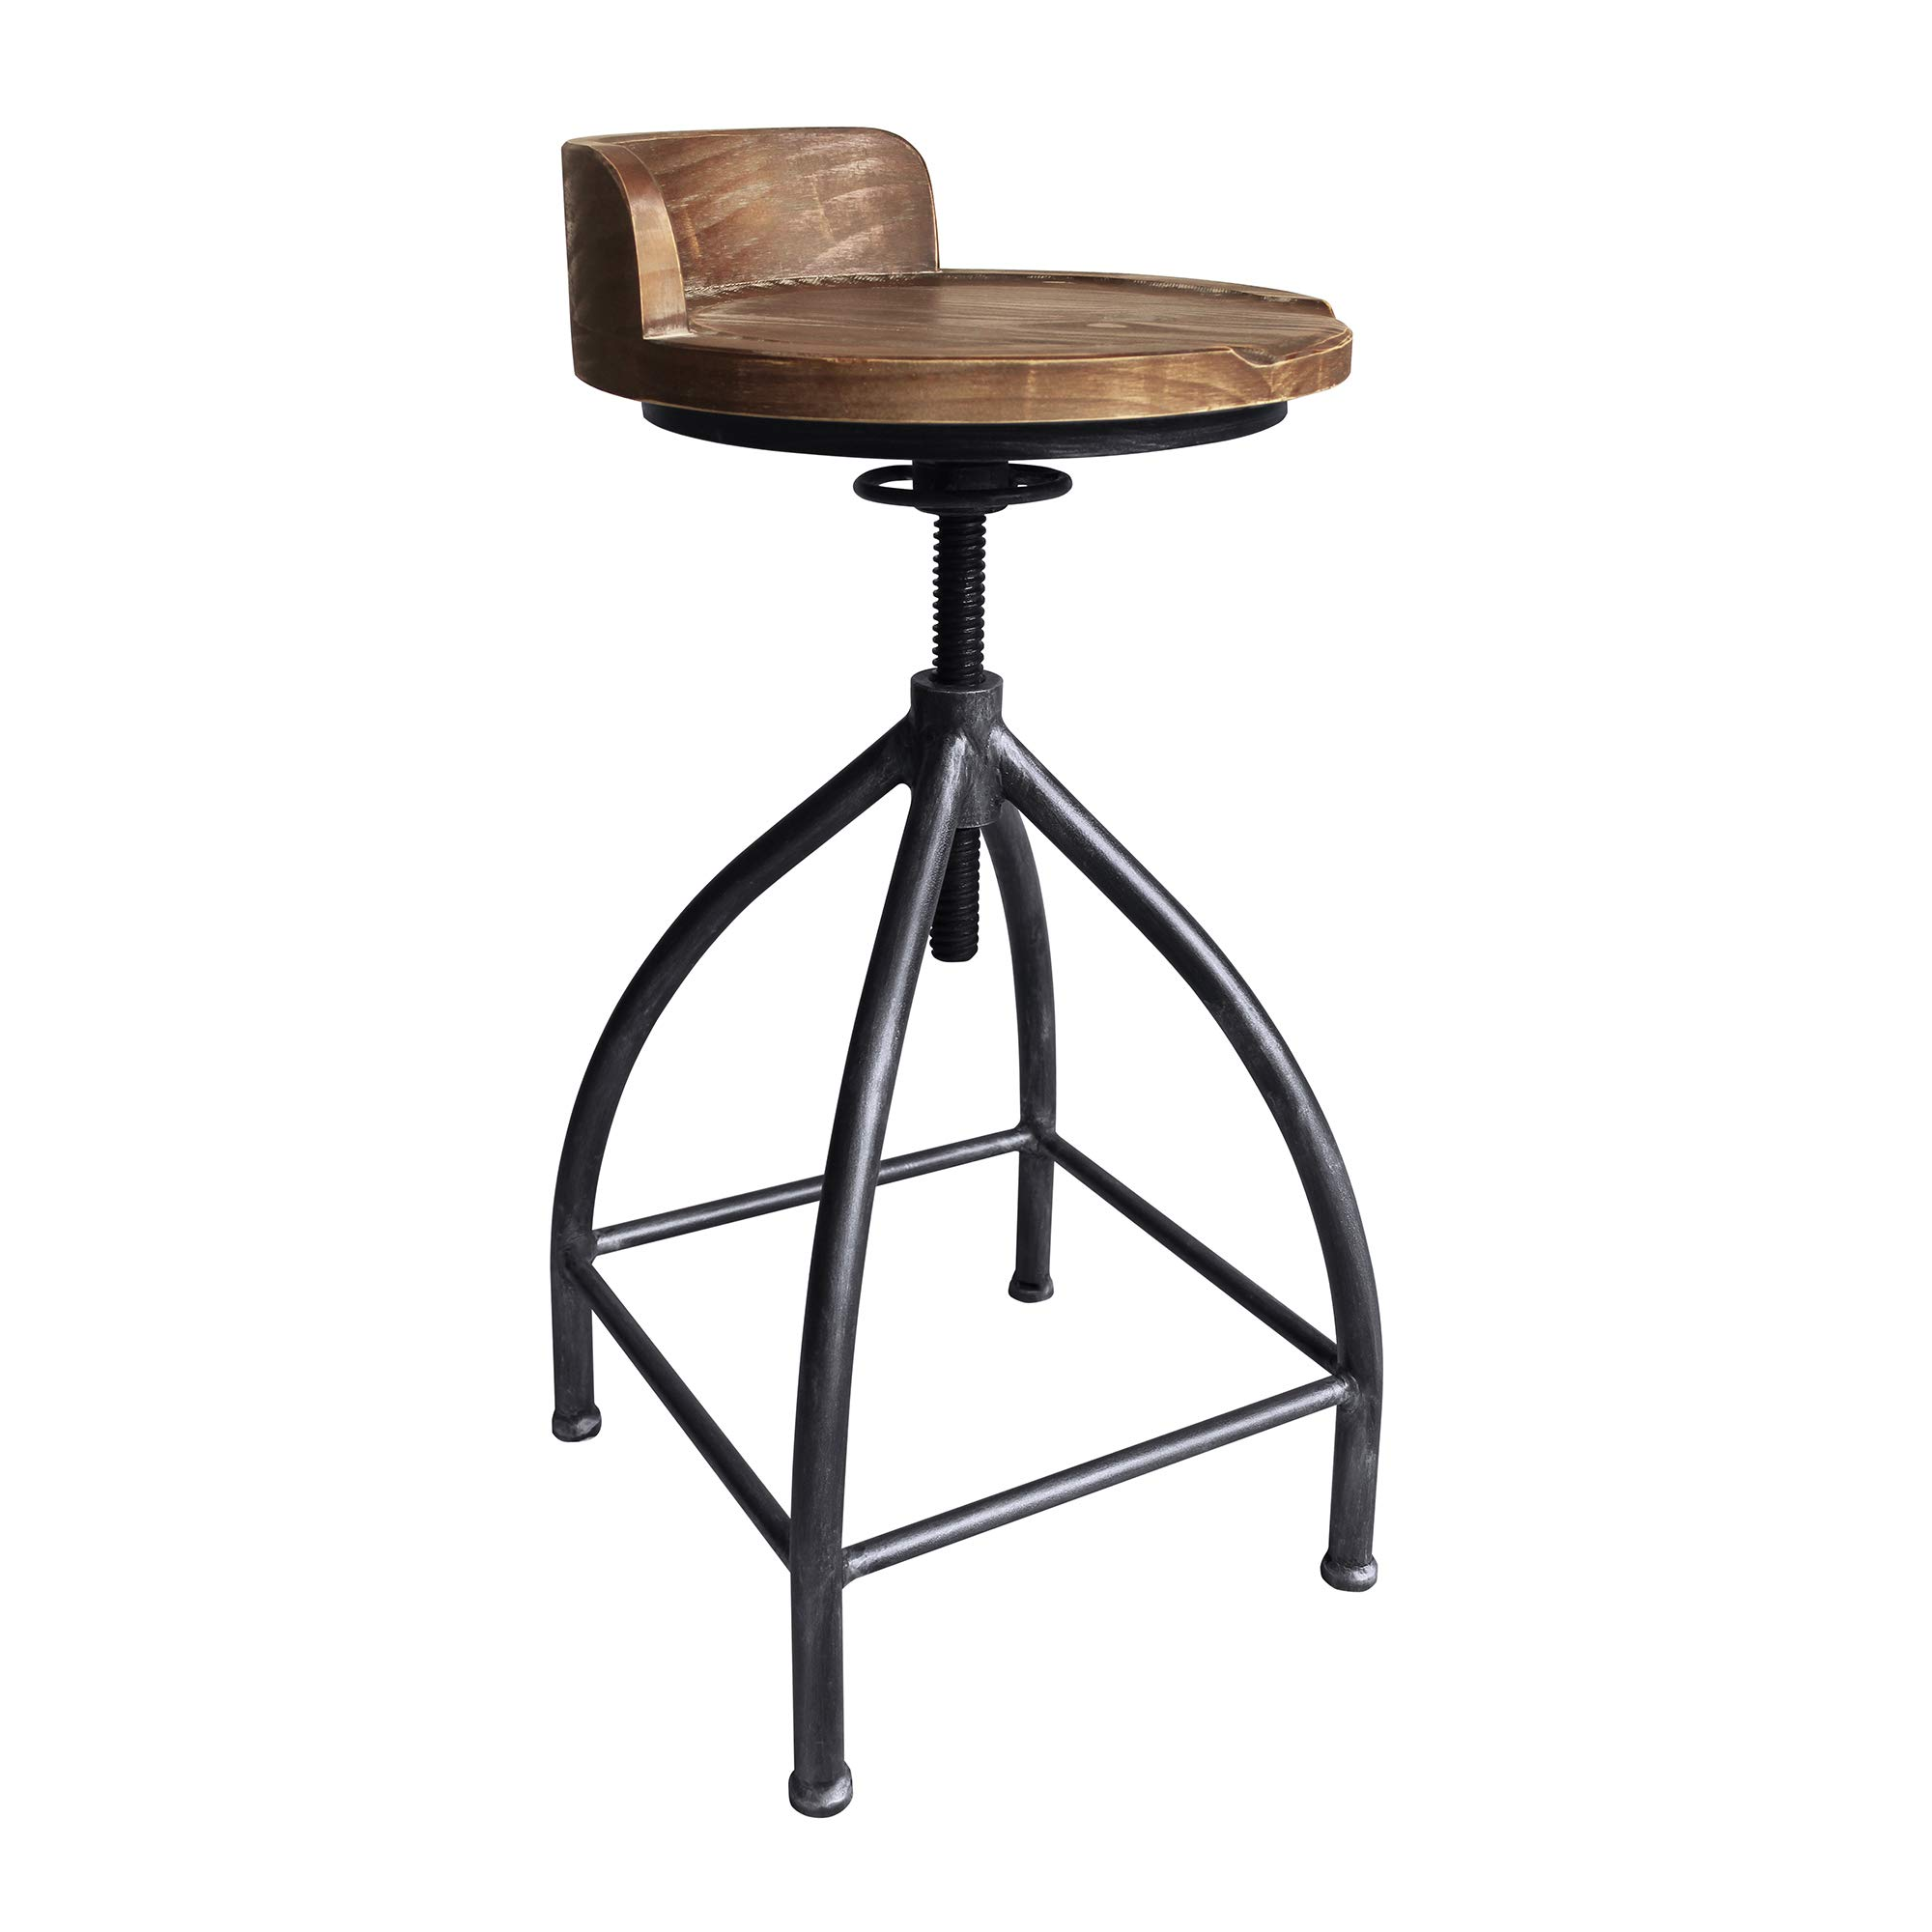 Today's Mentality Fuchsia Industrial Adjustable Metal Barstool in Silver Brushed Gray with Brown Wood Seat